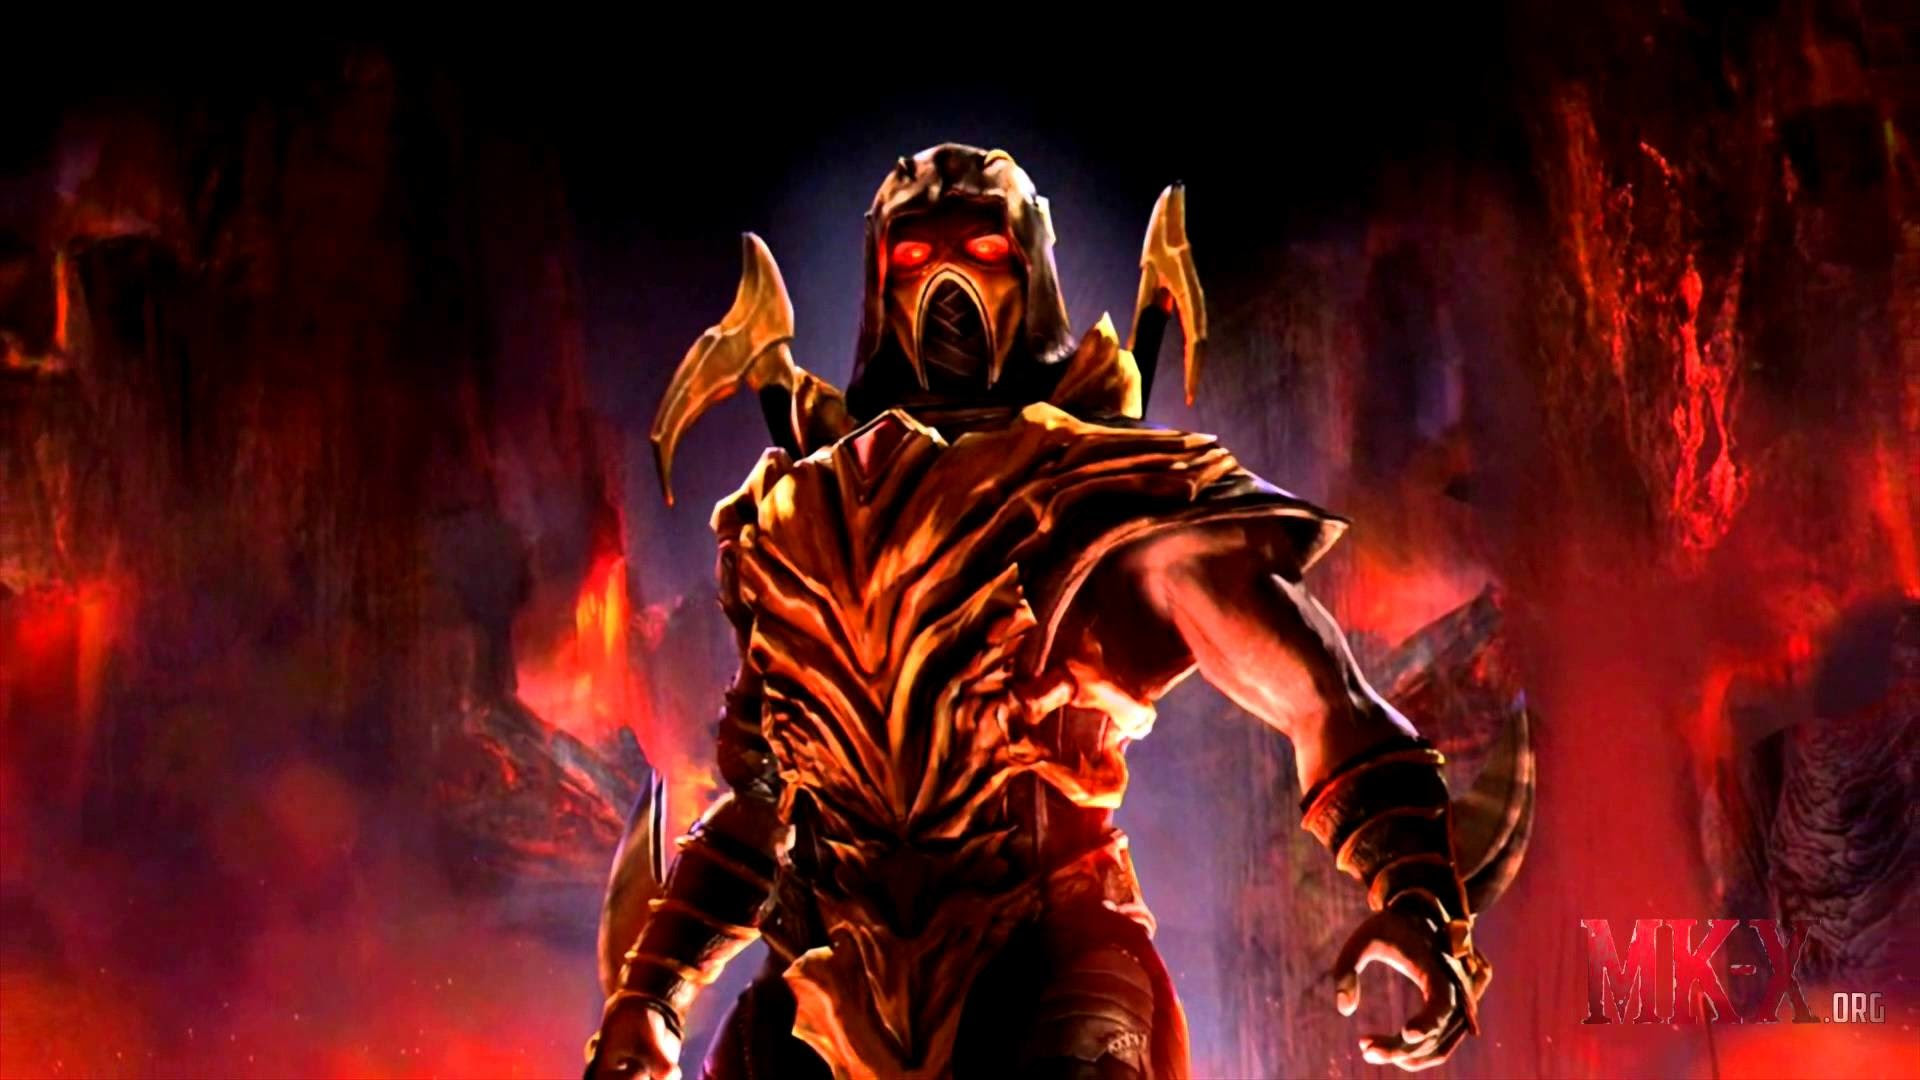 Scorpion Mortal Kombat Wallpaper Veterinaria Online